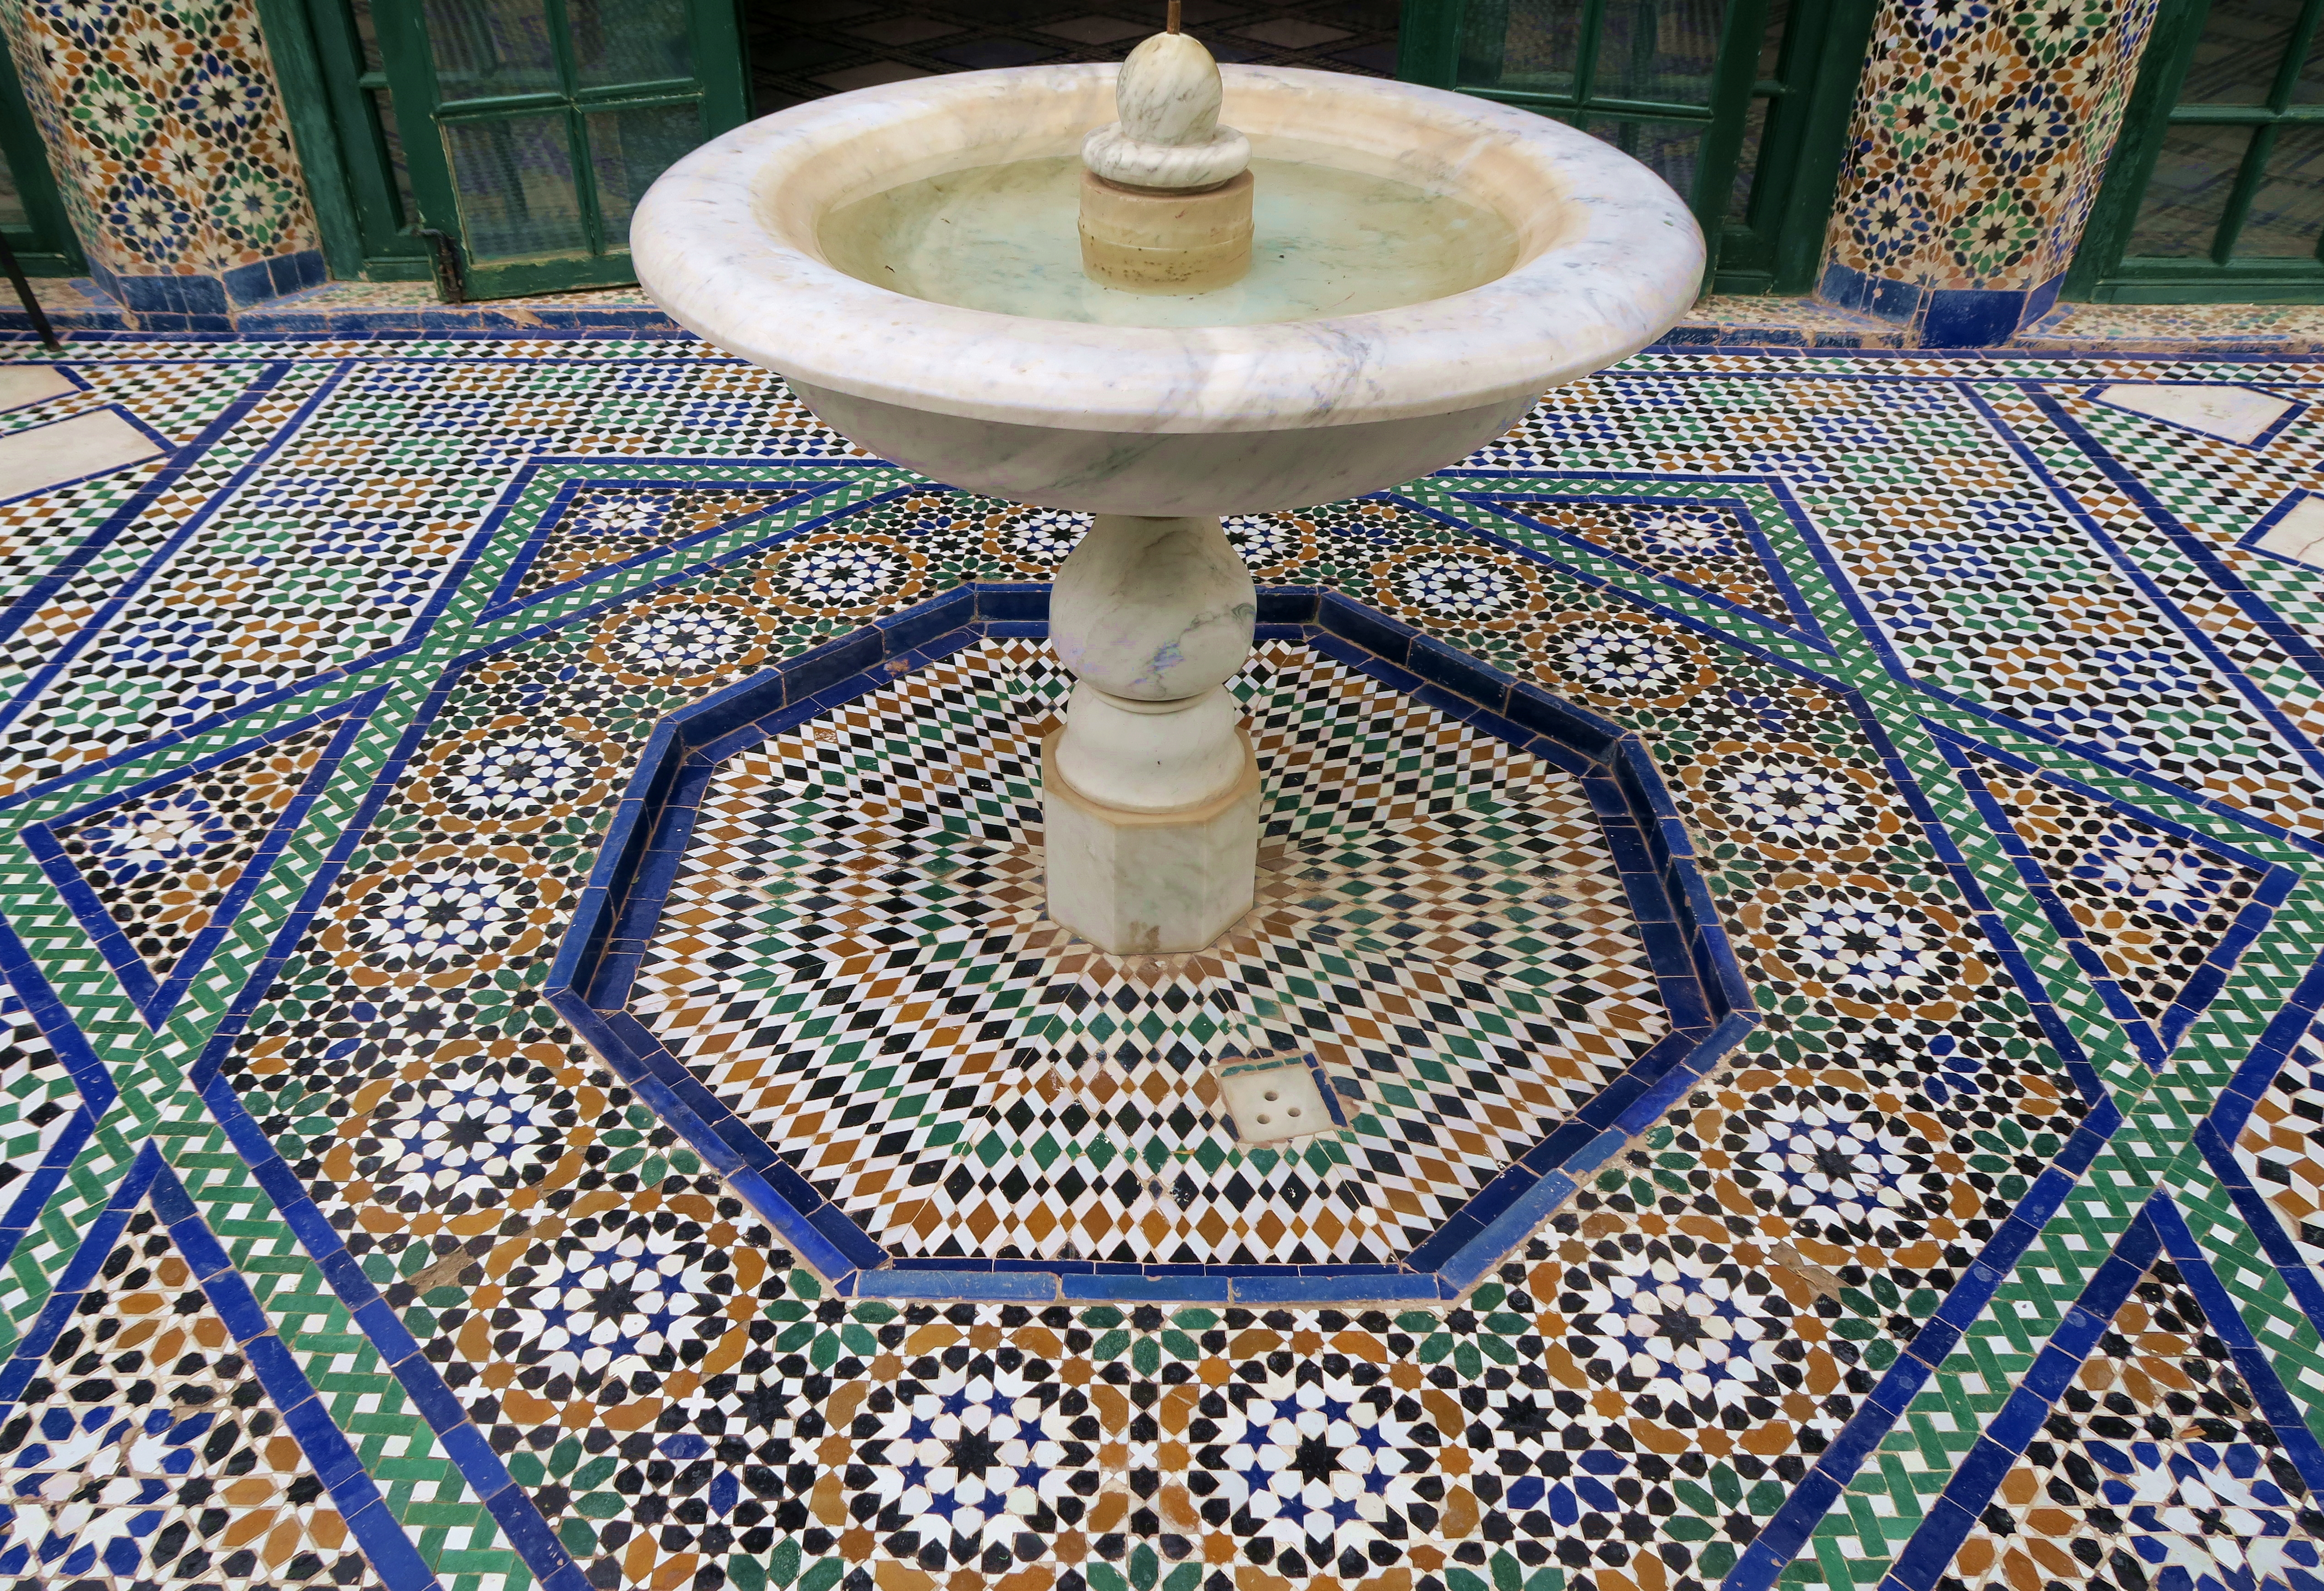 Marrakech El Bahia Palace Fountain